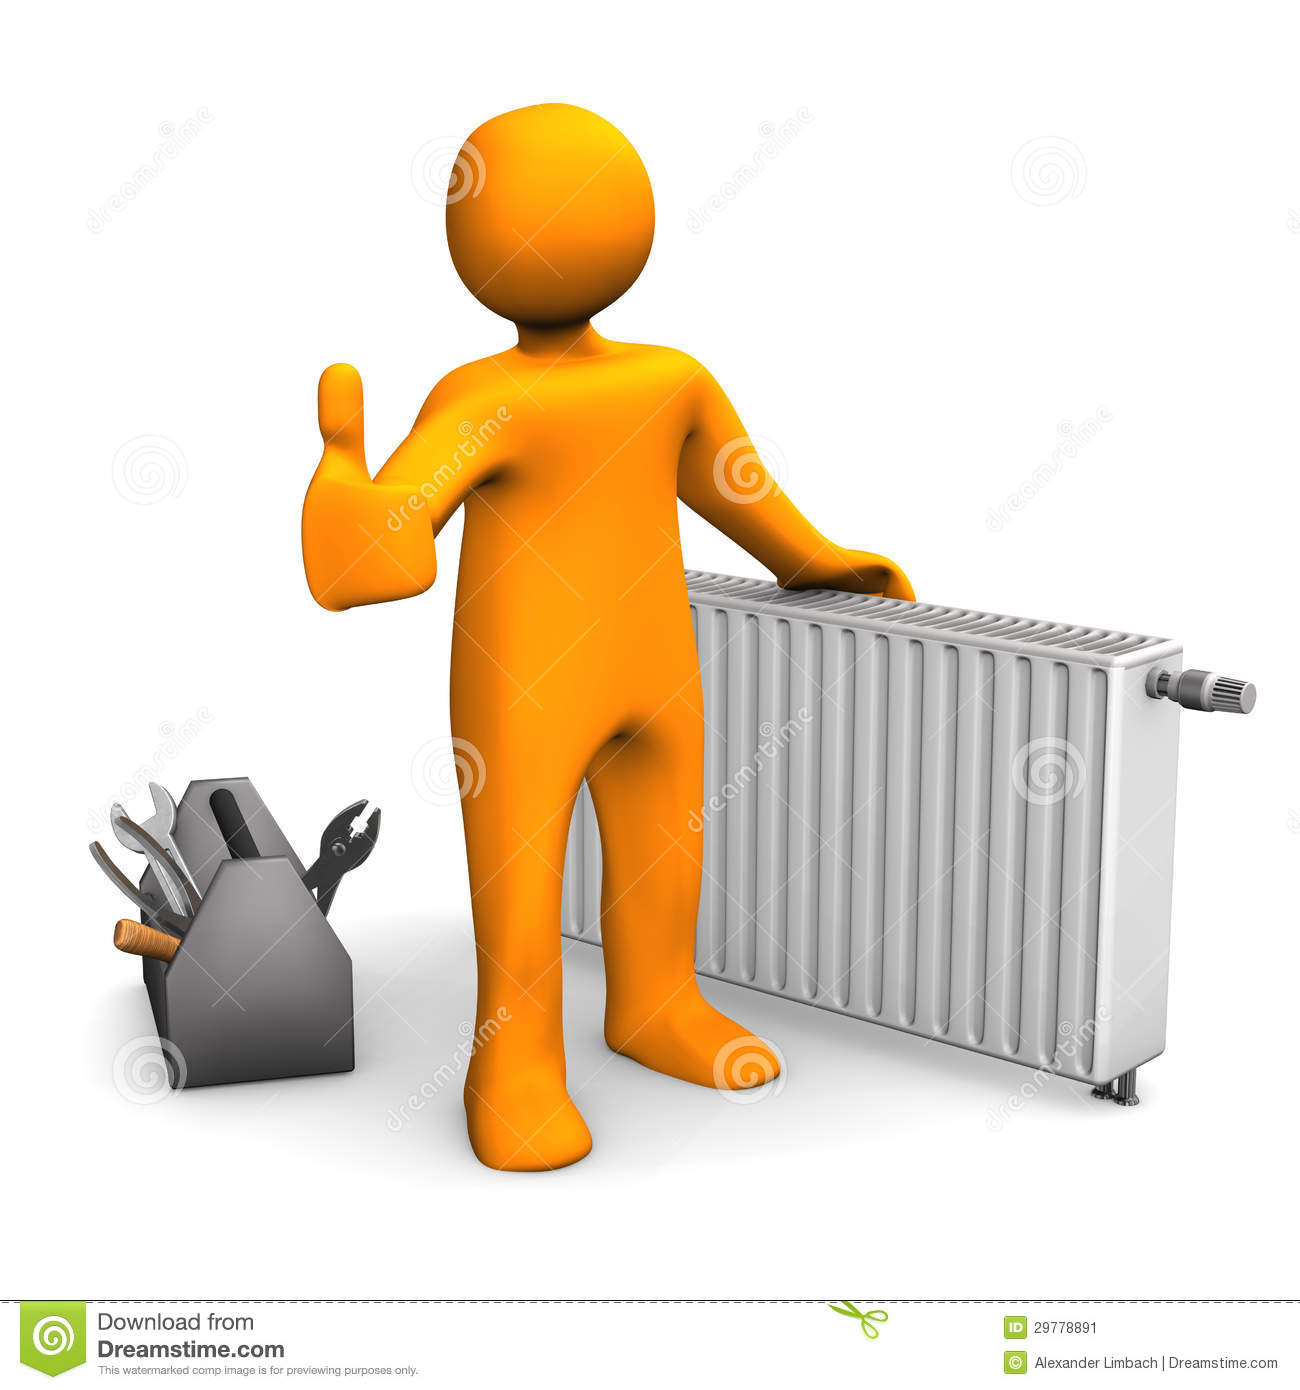 Cooking Gas Clipart Gallery Biogas Diagram Stock Images Image 36146824 Plumber Heater Ok 29778891